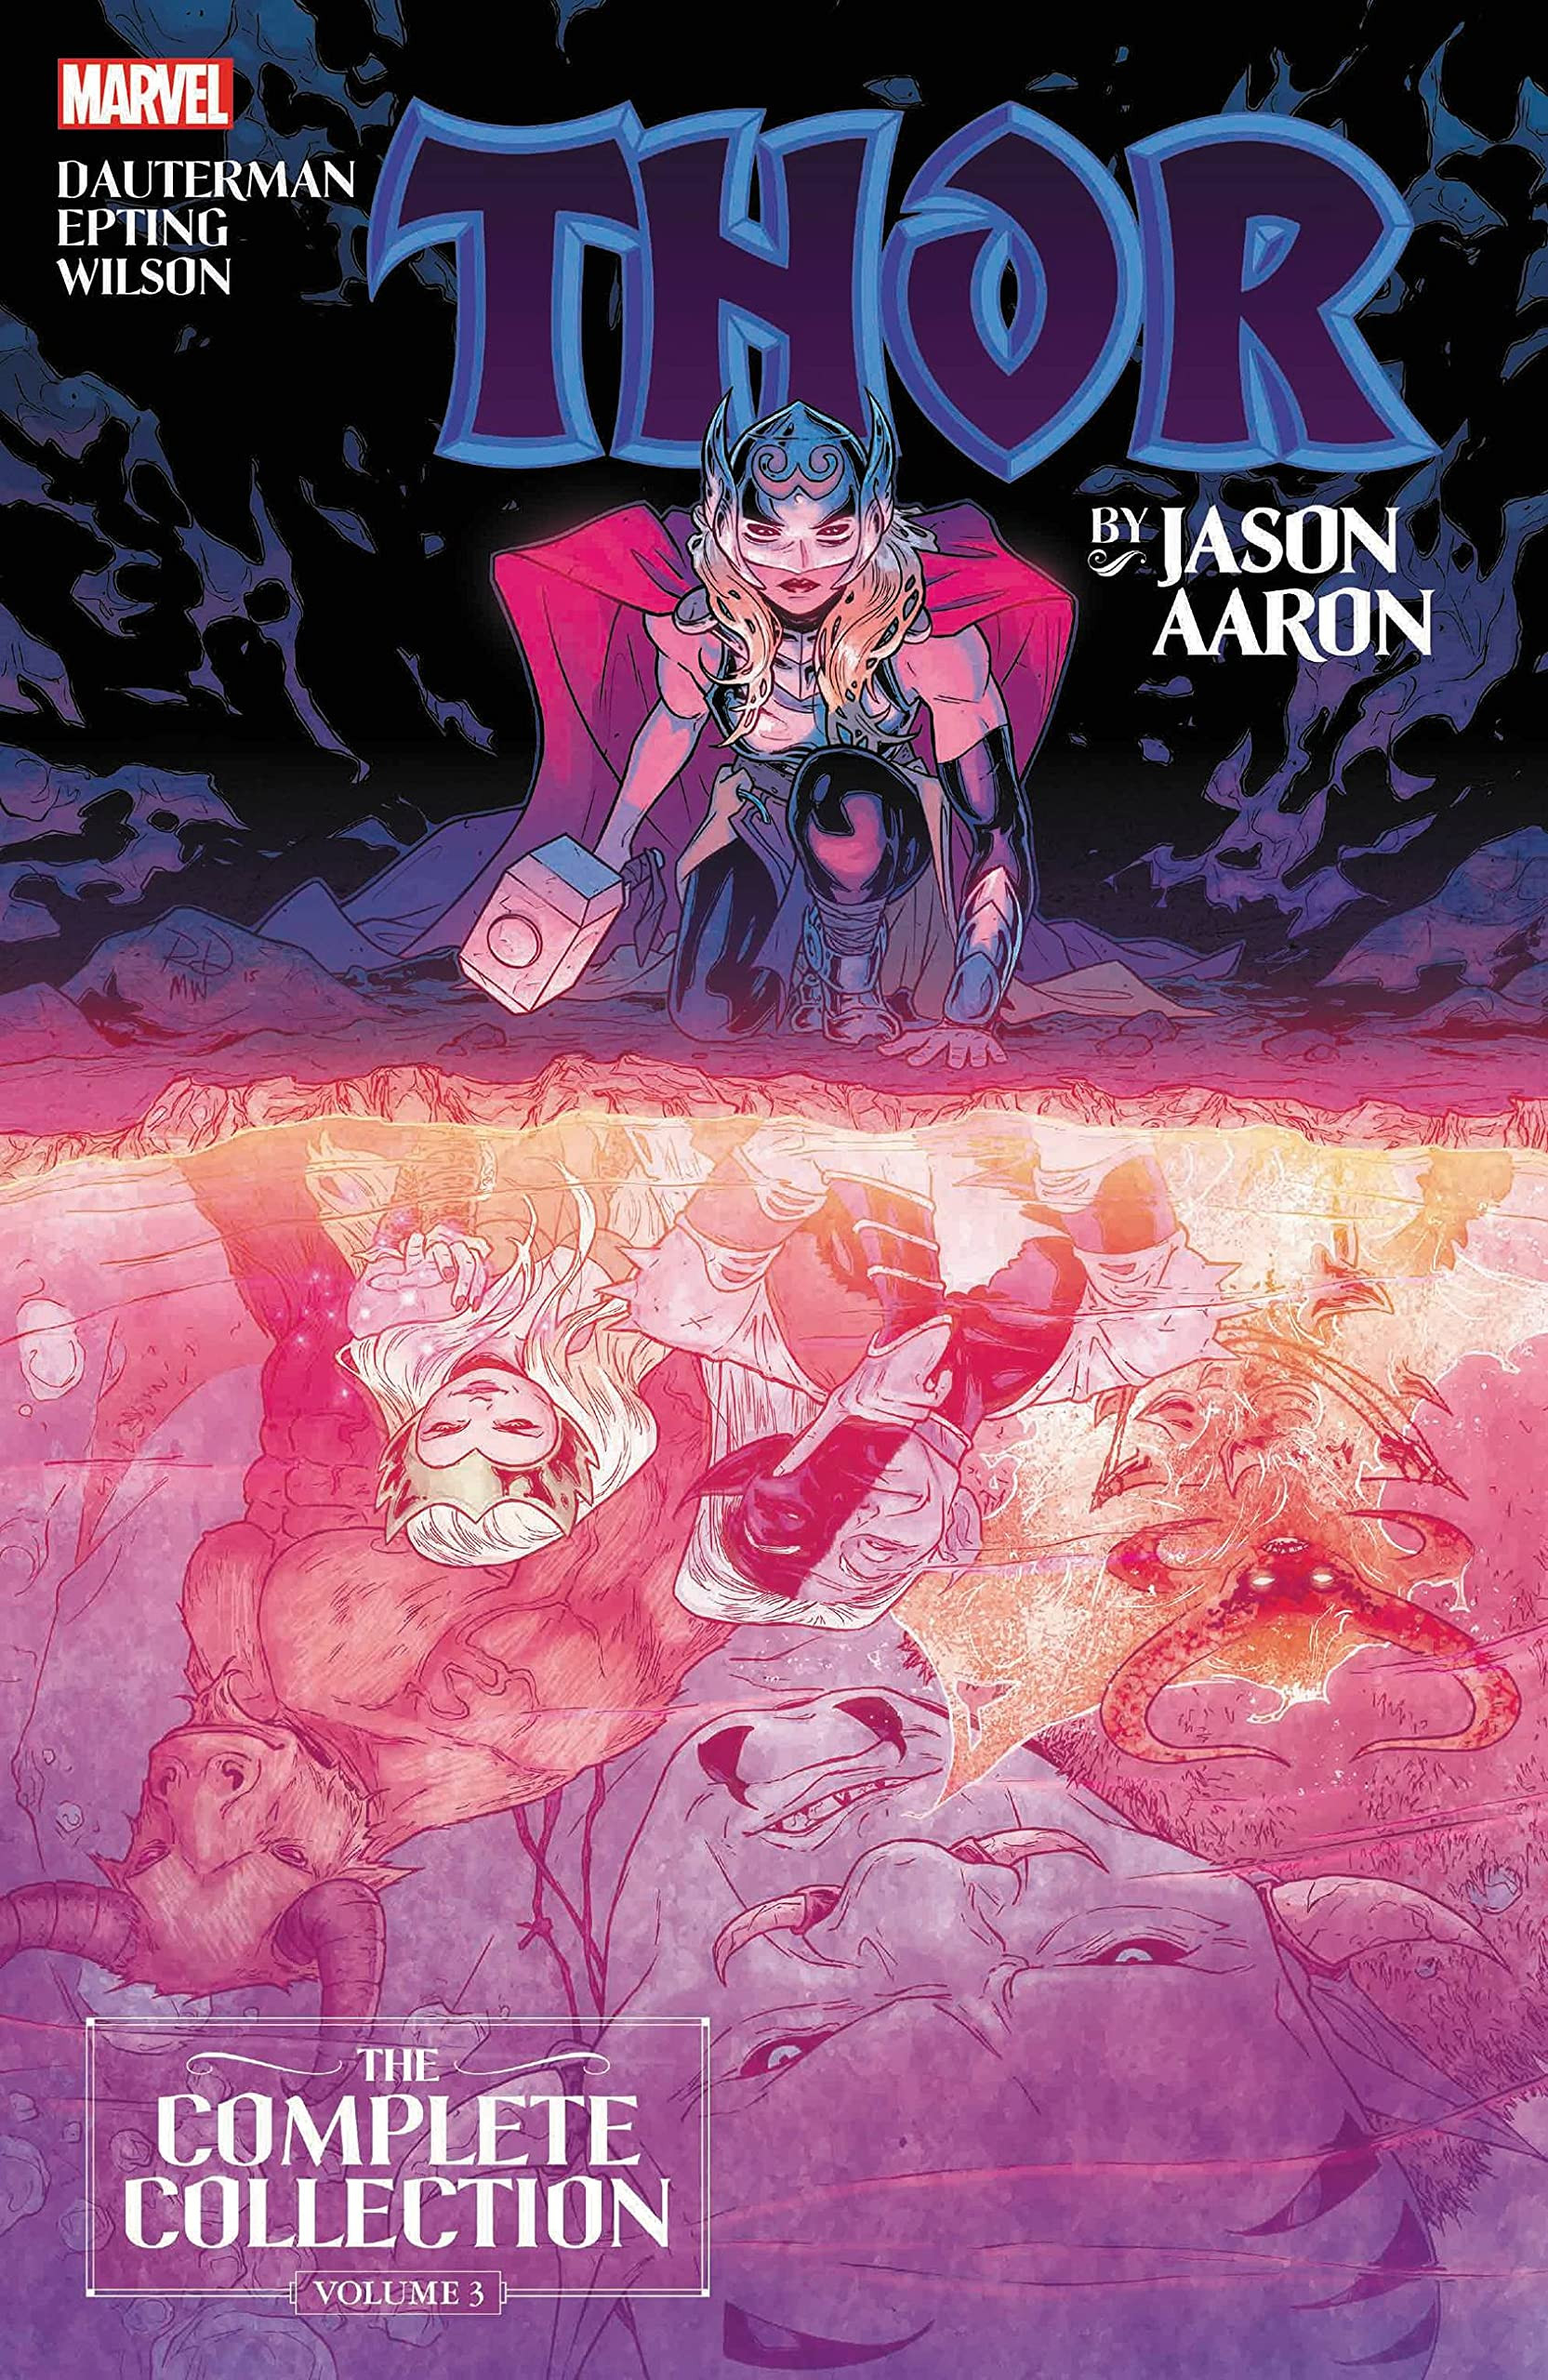 Thor by Jason Aaron - The Complete Collection 3